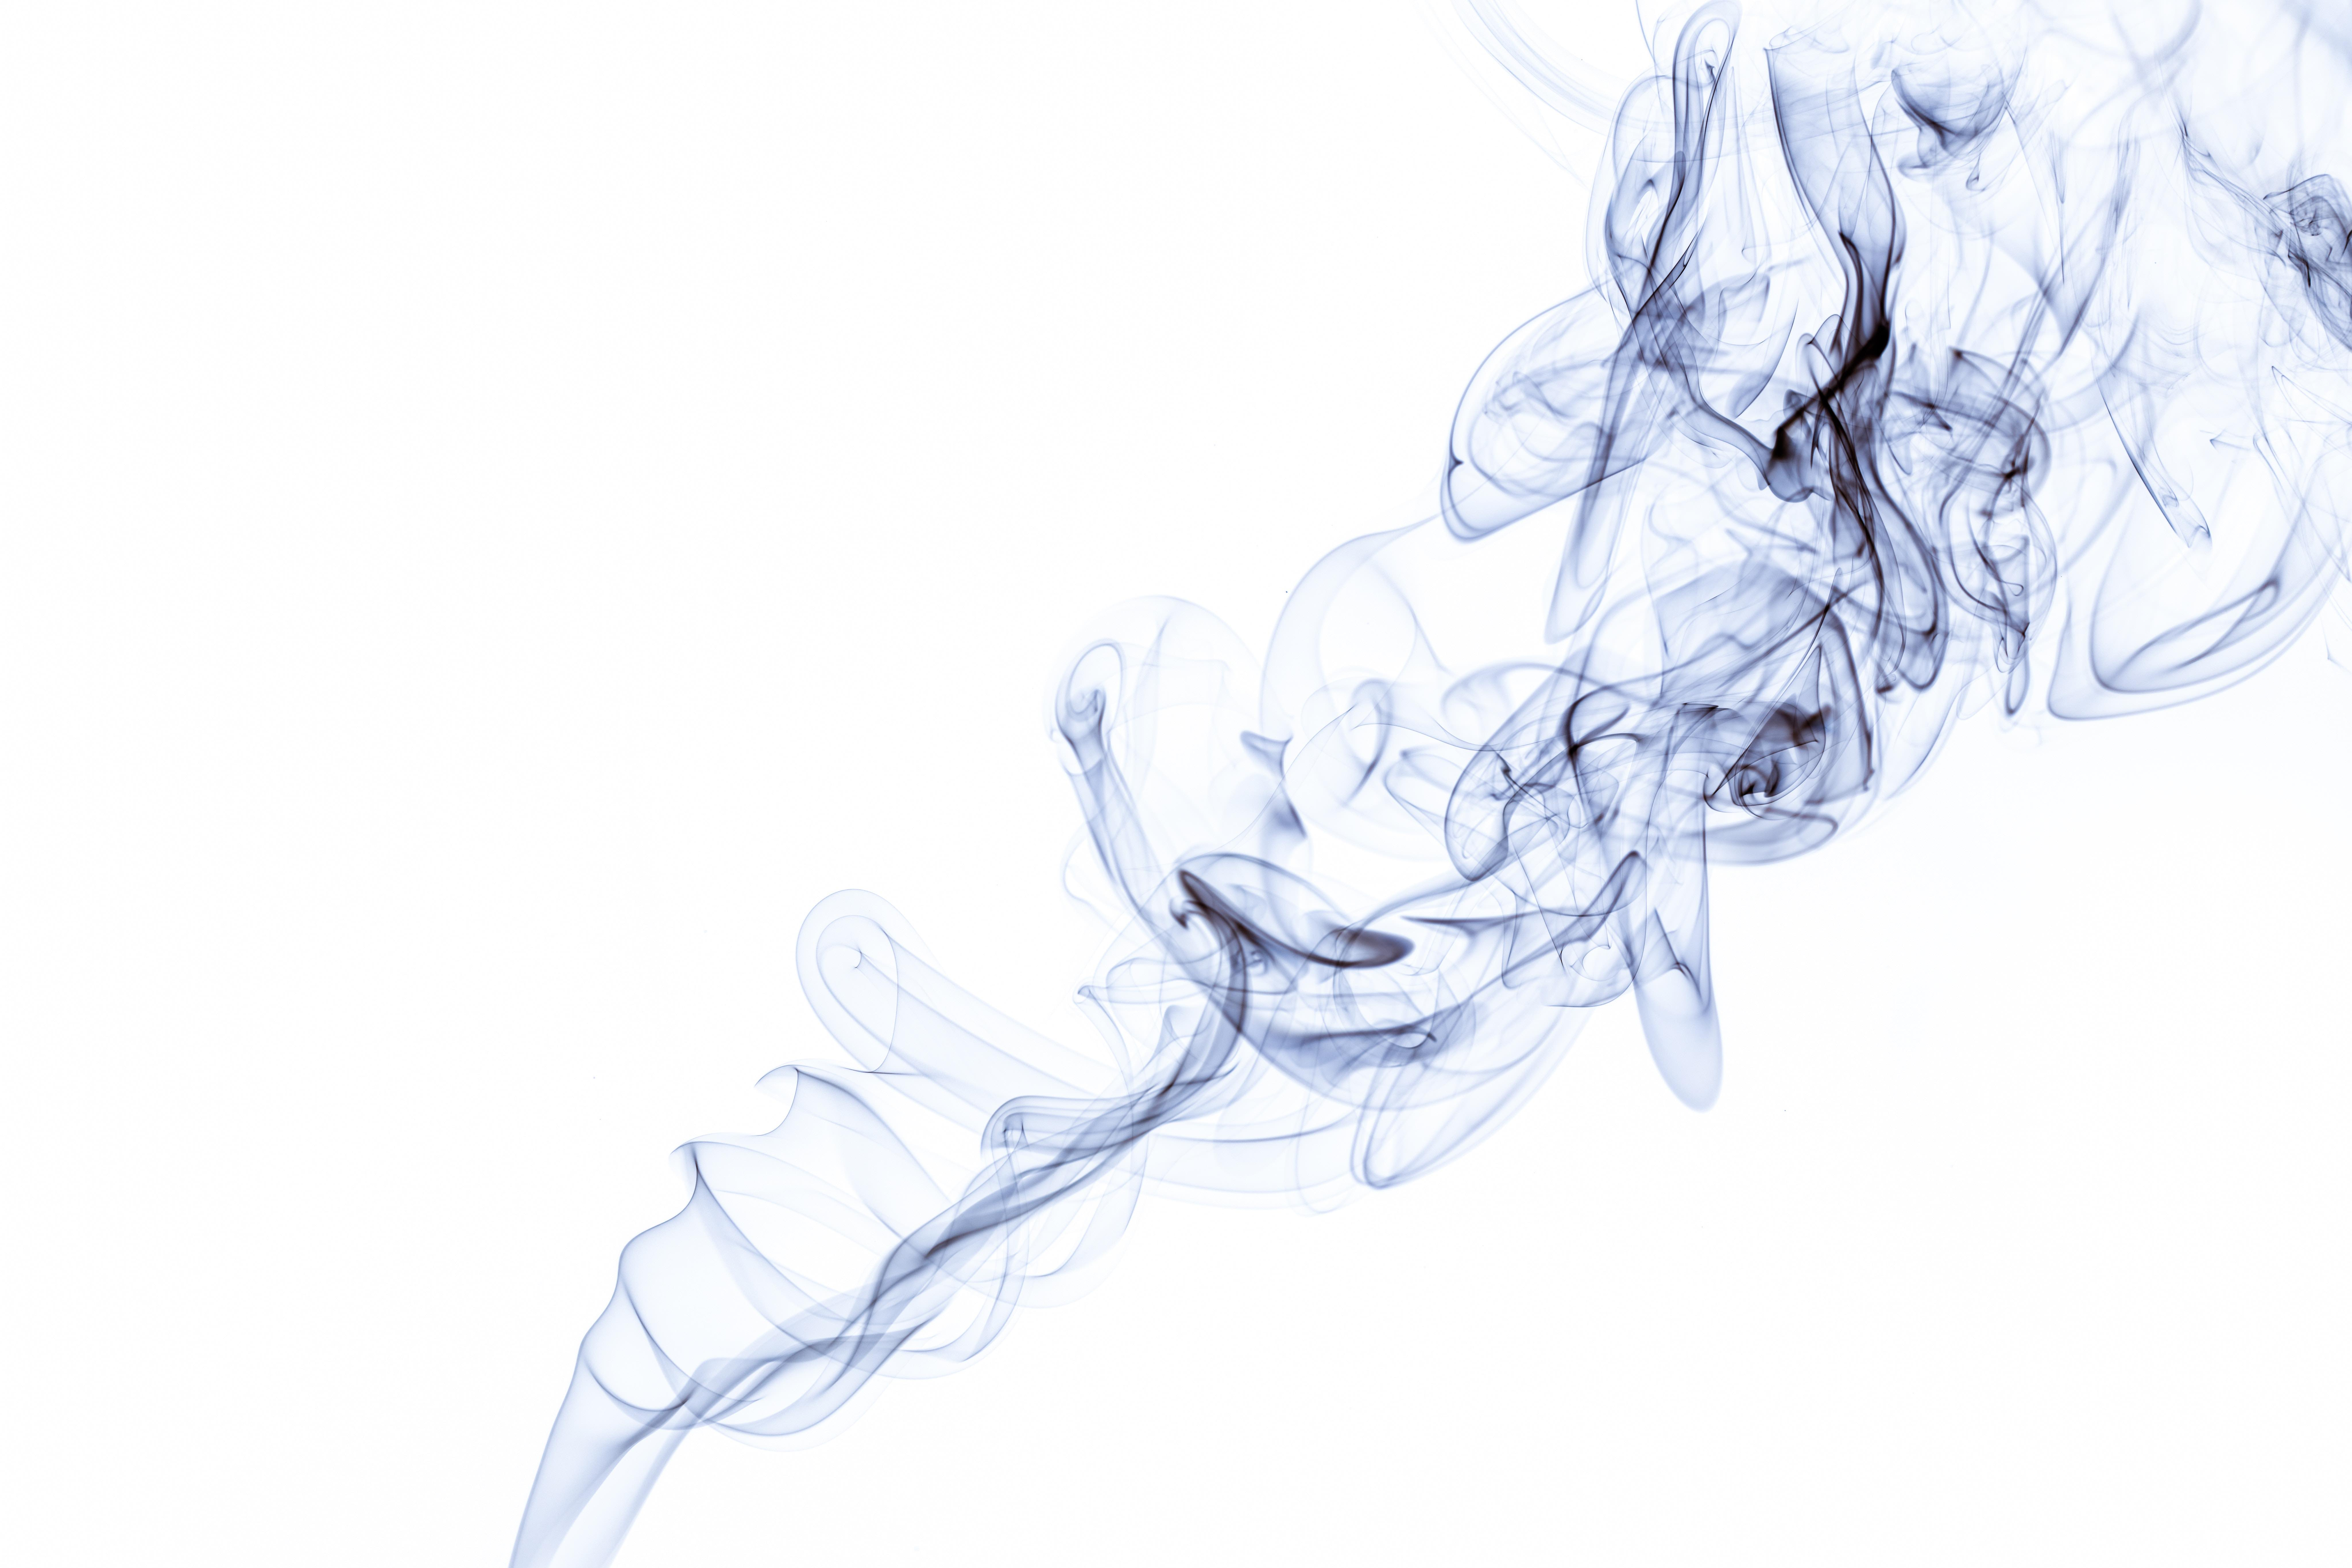 Vaping And How It May Affect Your Vision